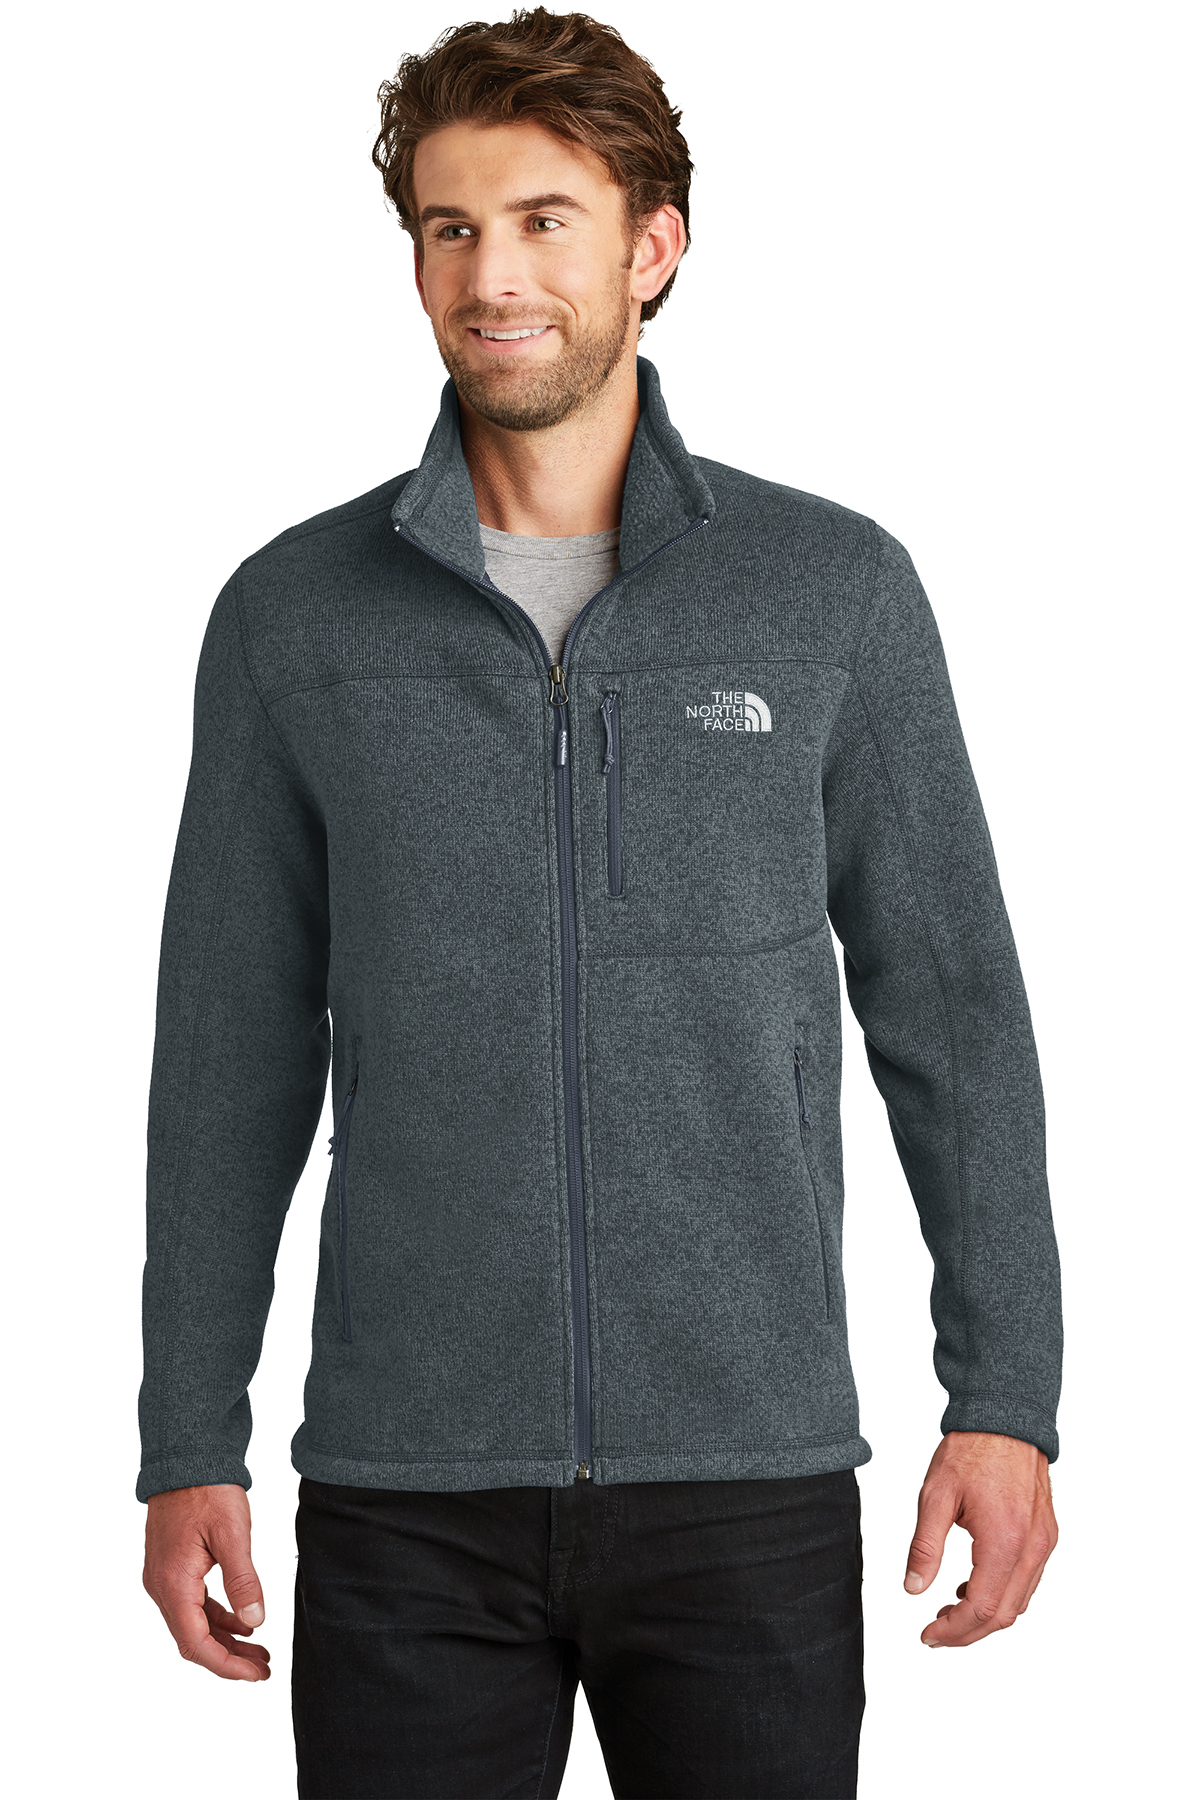 The North Face® NF0A3LH7 - Men's Sweater Fleece Jacket